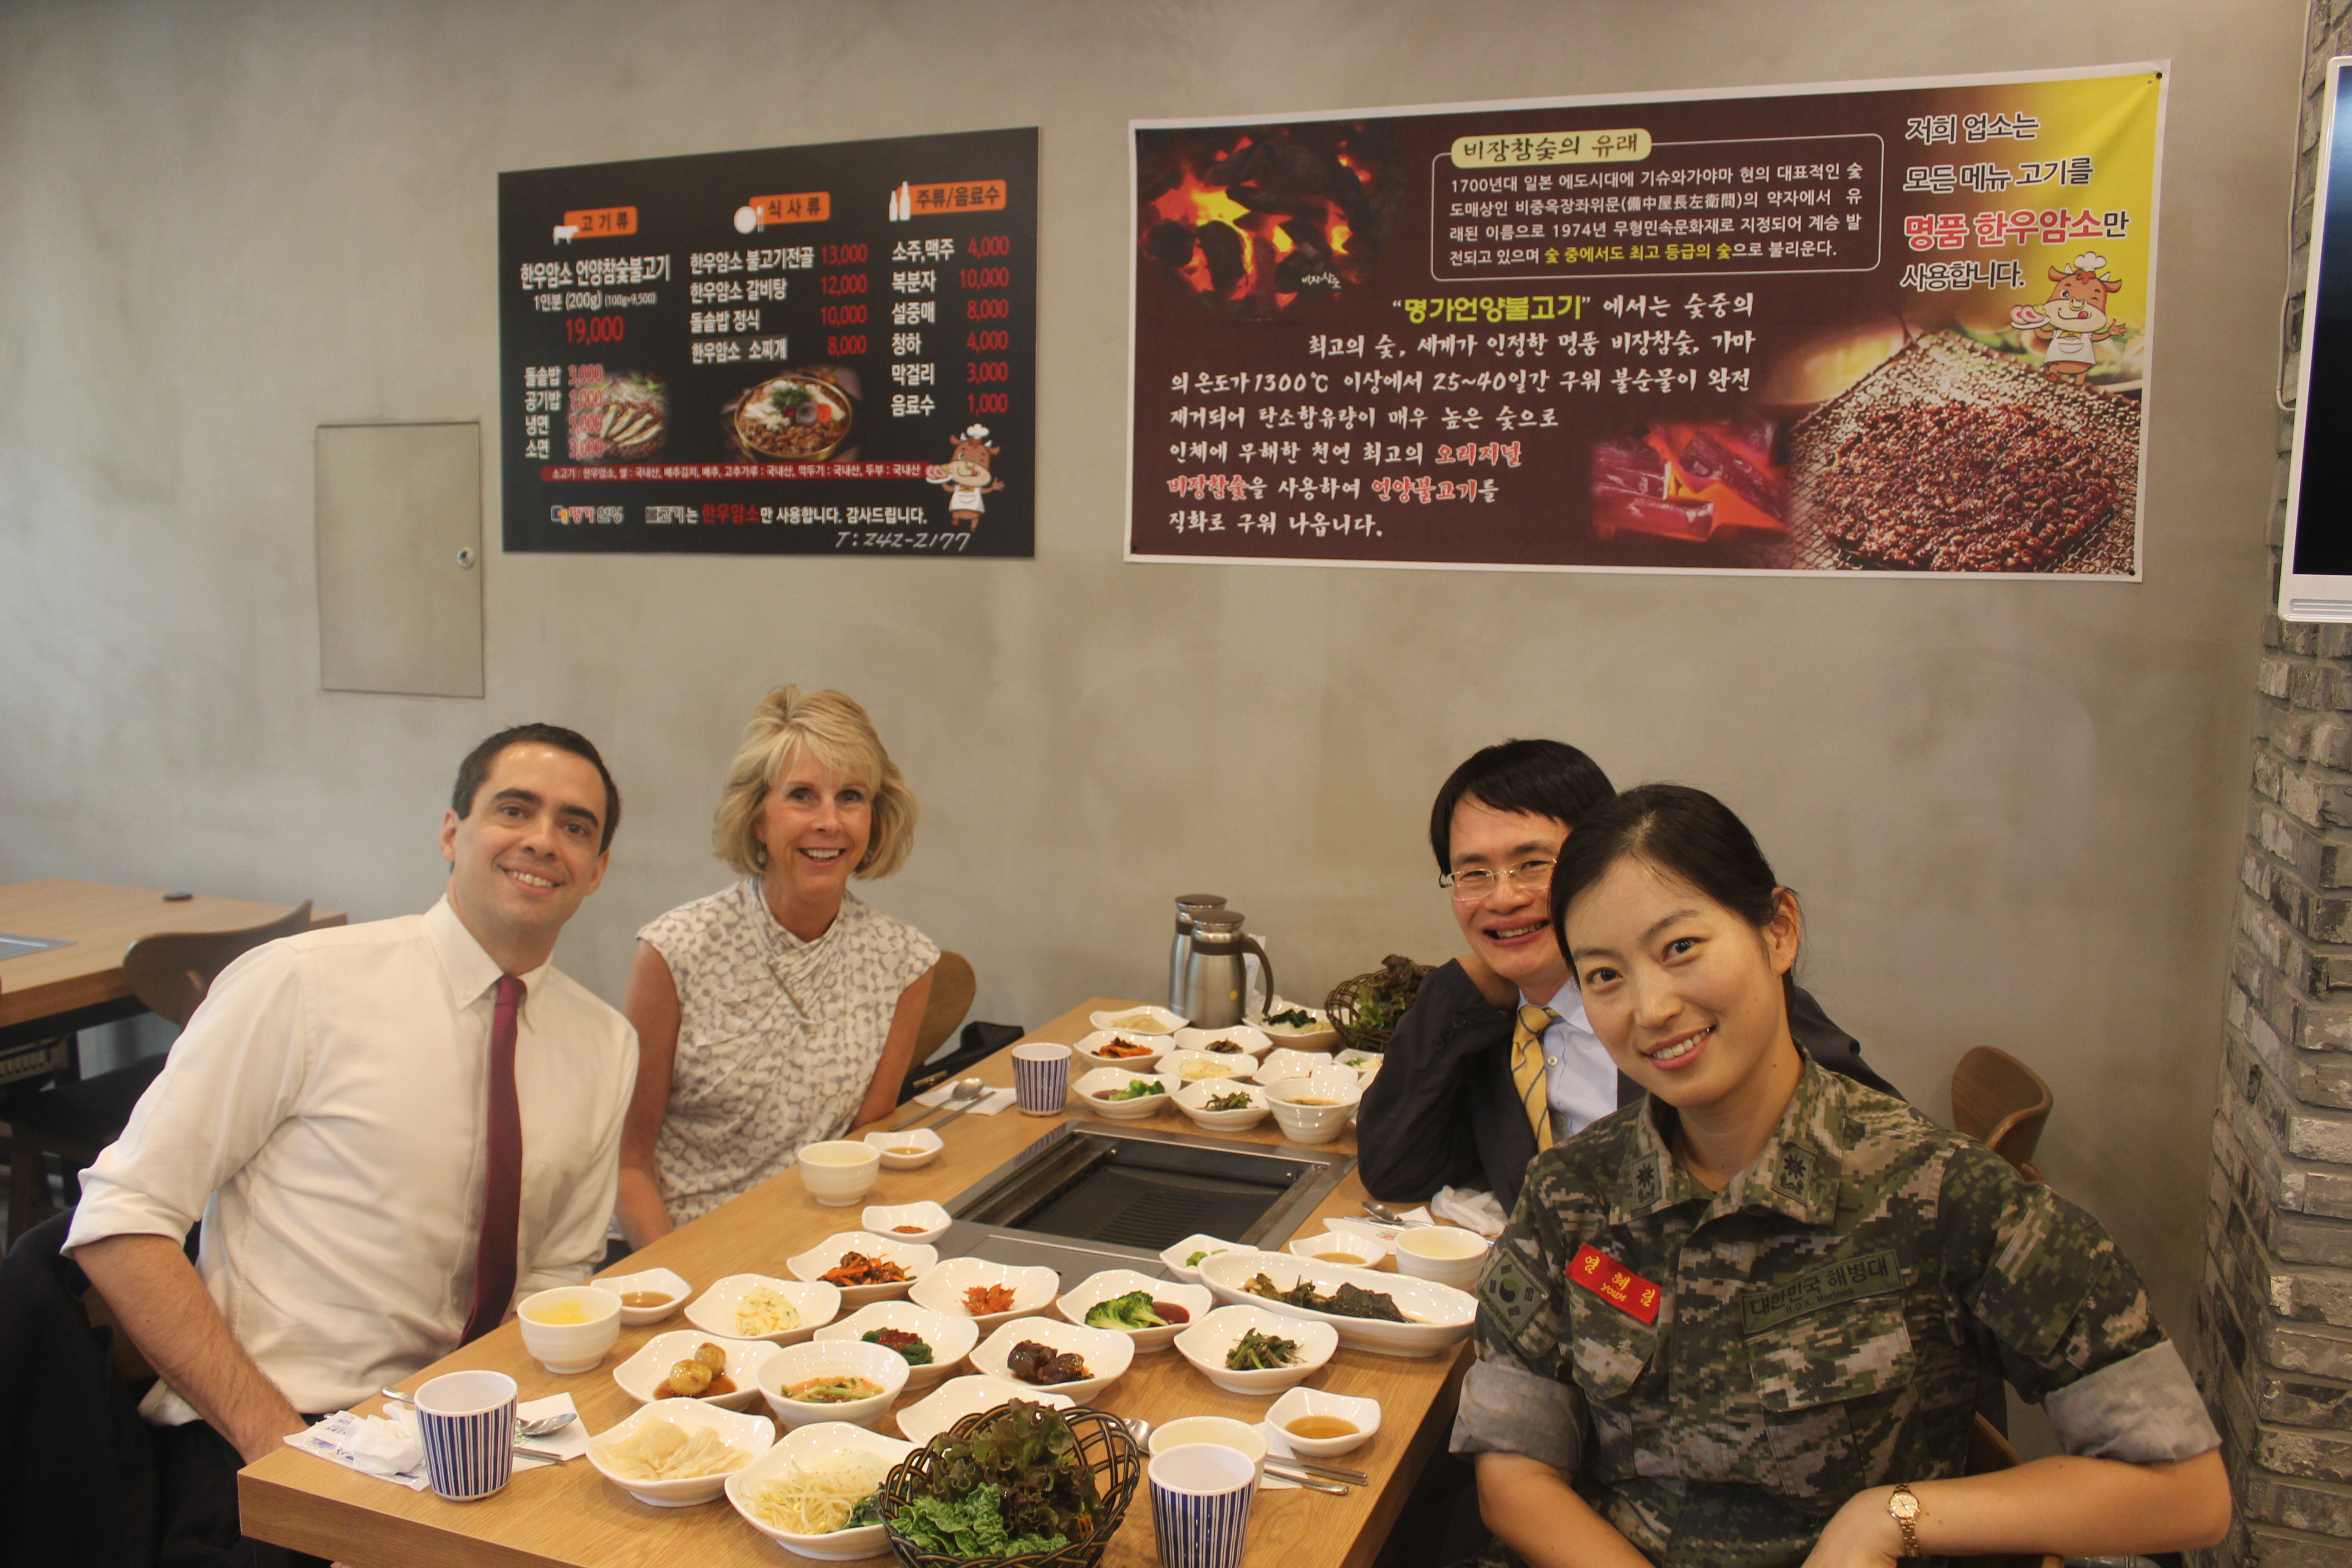 With Dr. Yang, a friend who helped organize the trip, and Major Youm Hey-lim, ROK Marine escort for the day